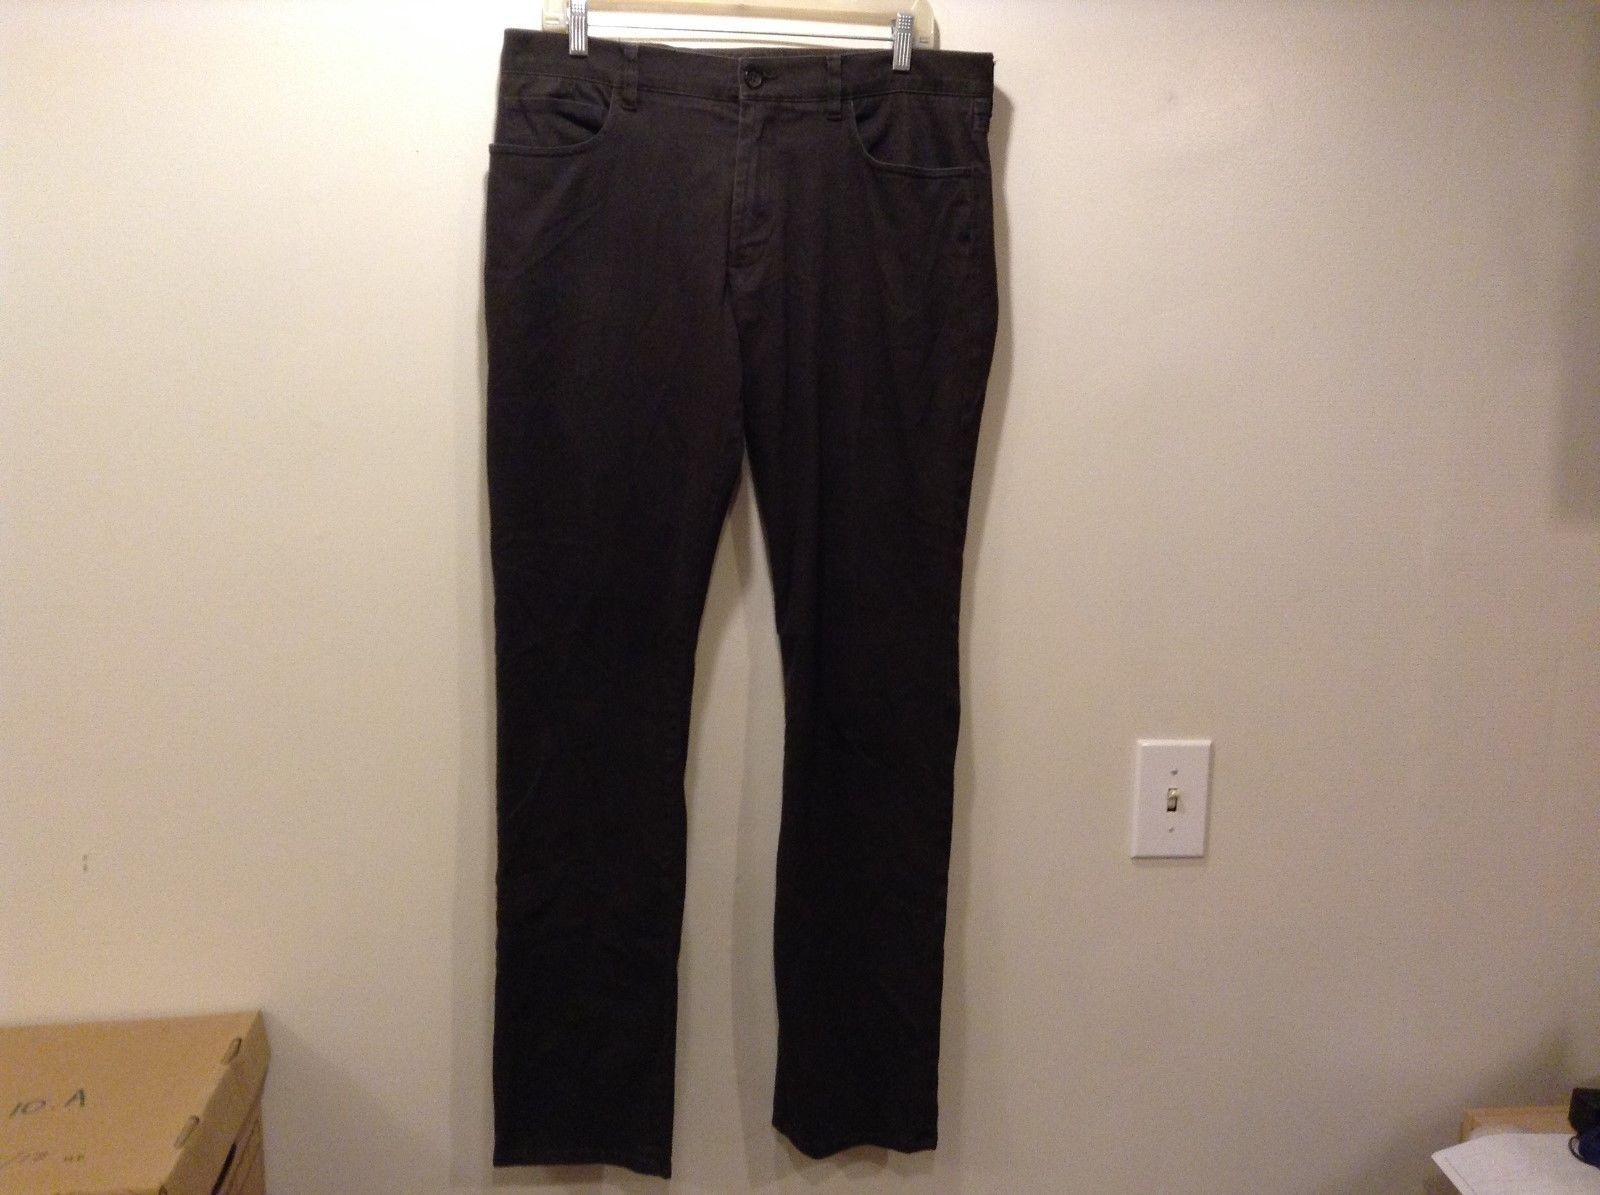 VINCE Black Stretchy Med Weight Skinny Jeans/Pants Sz 34